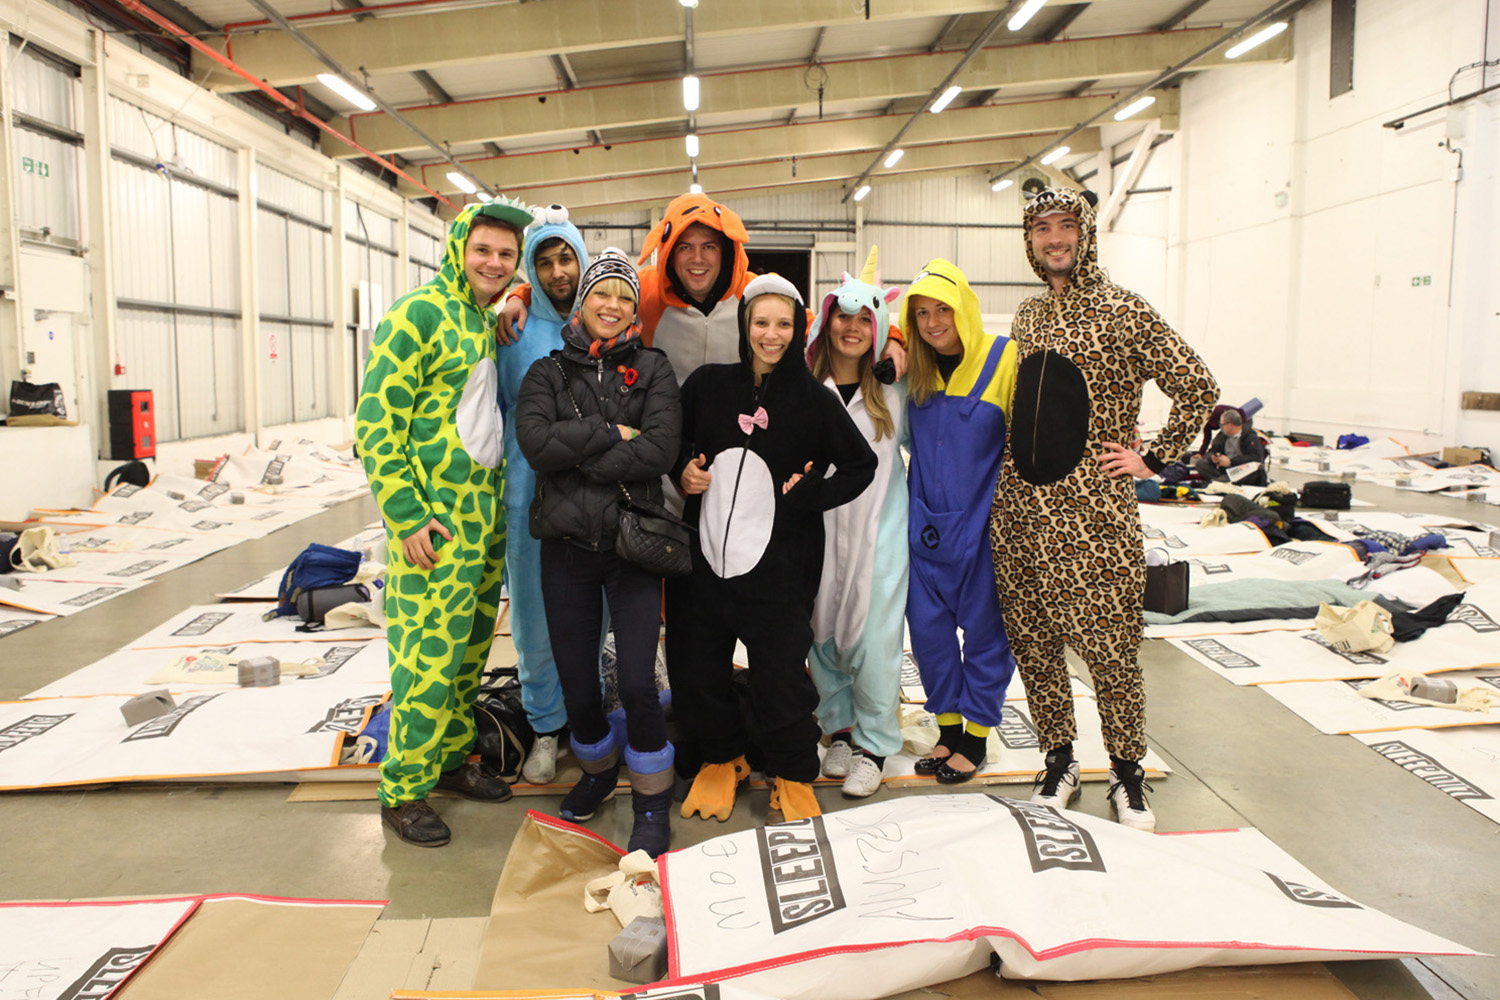 044_Centrepoint_Sleepout_2014_by_Harriet_Armstrong